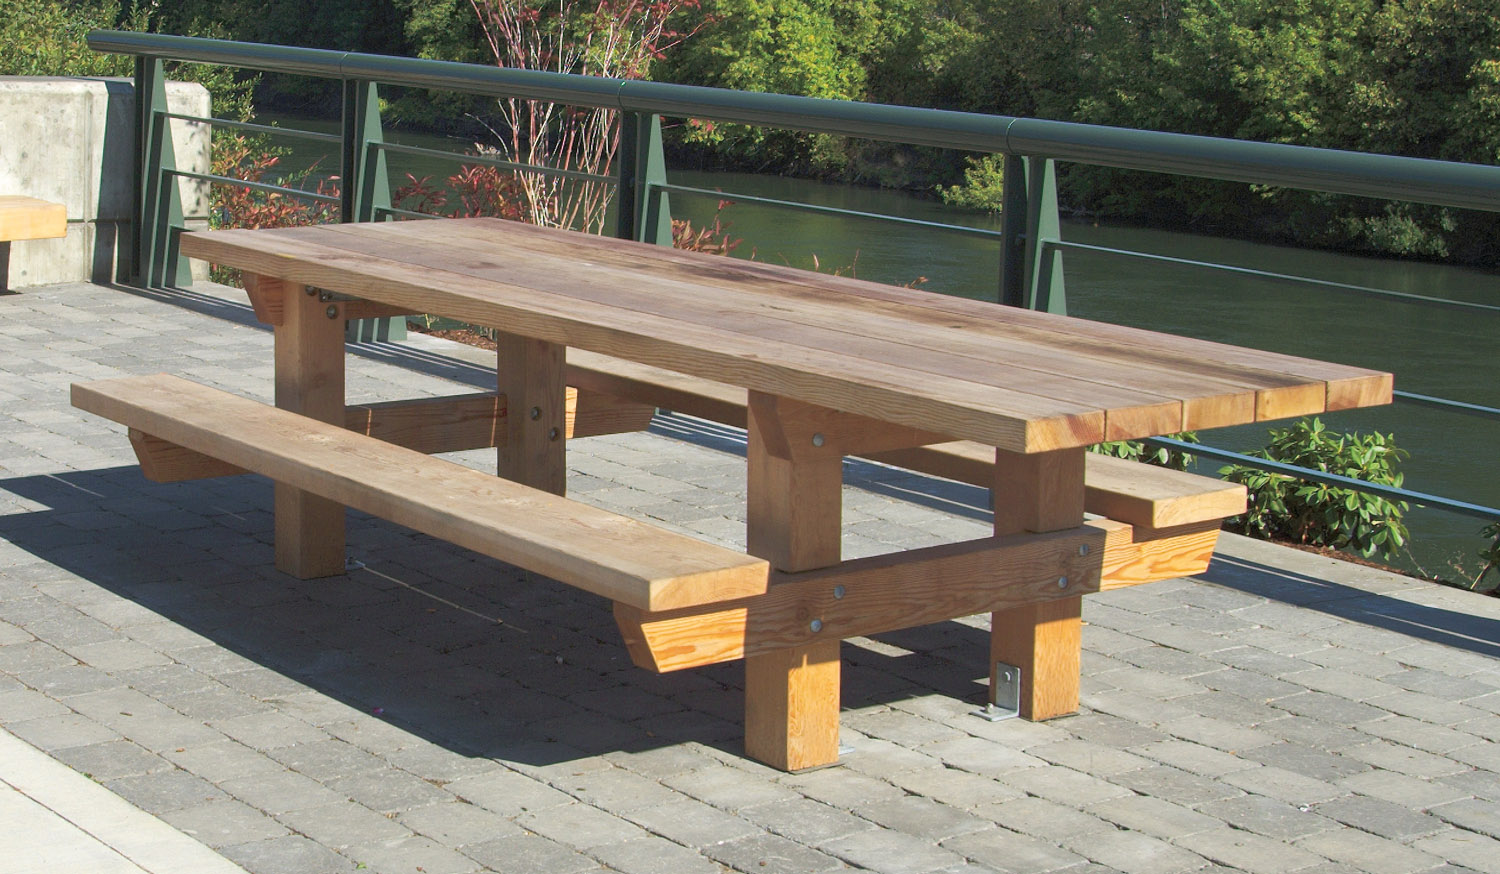 table plans picnic table plans round wooden picnic table round outdoor ...